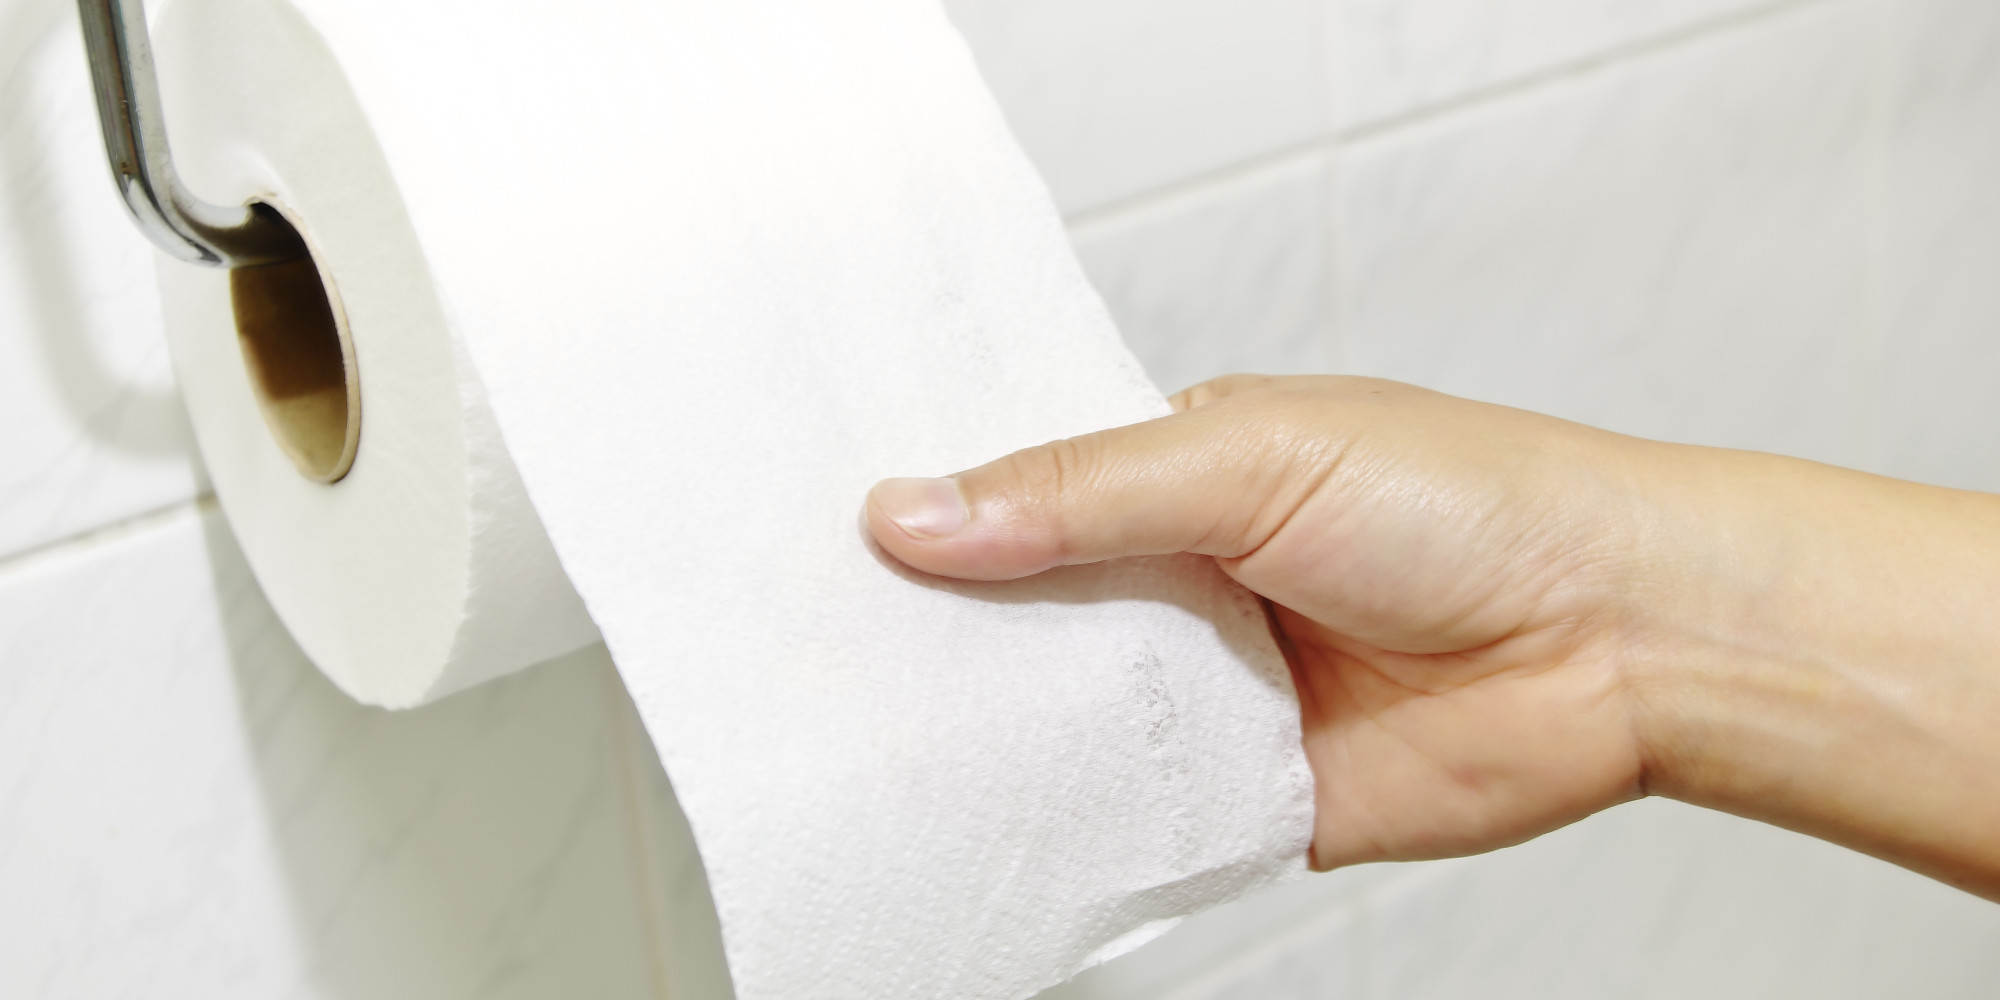 News Anchors Crack Up Over De Sheeting Toilet Paper